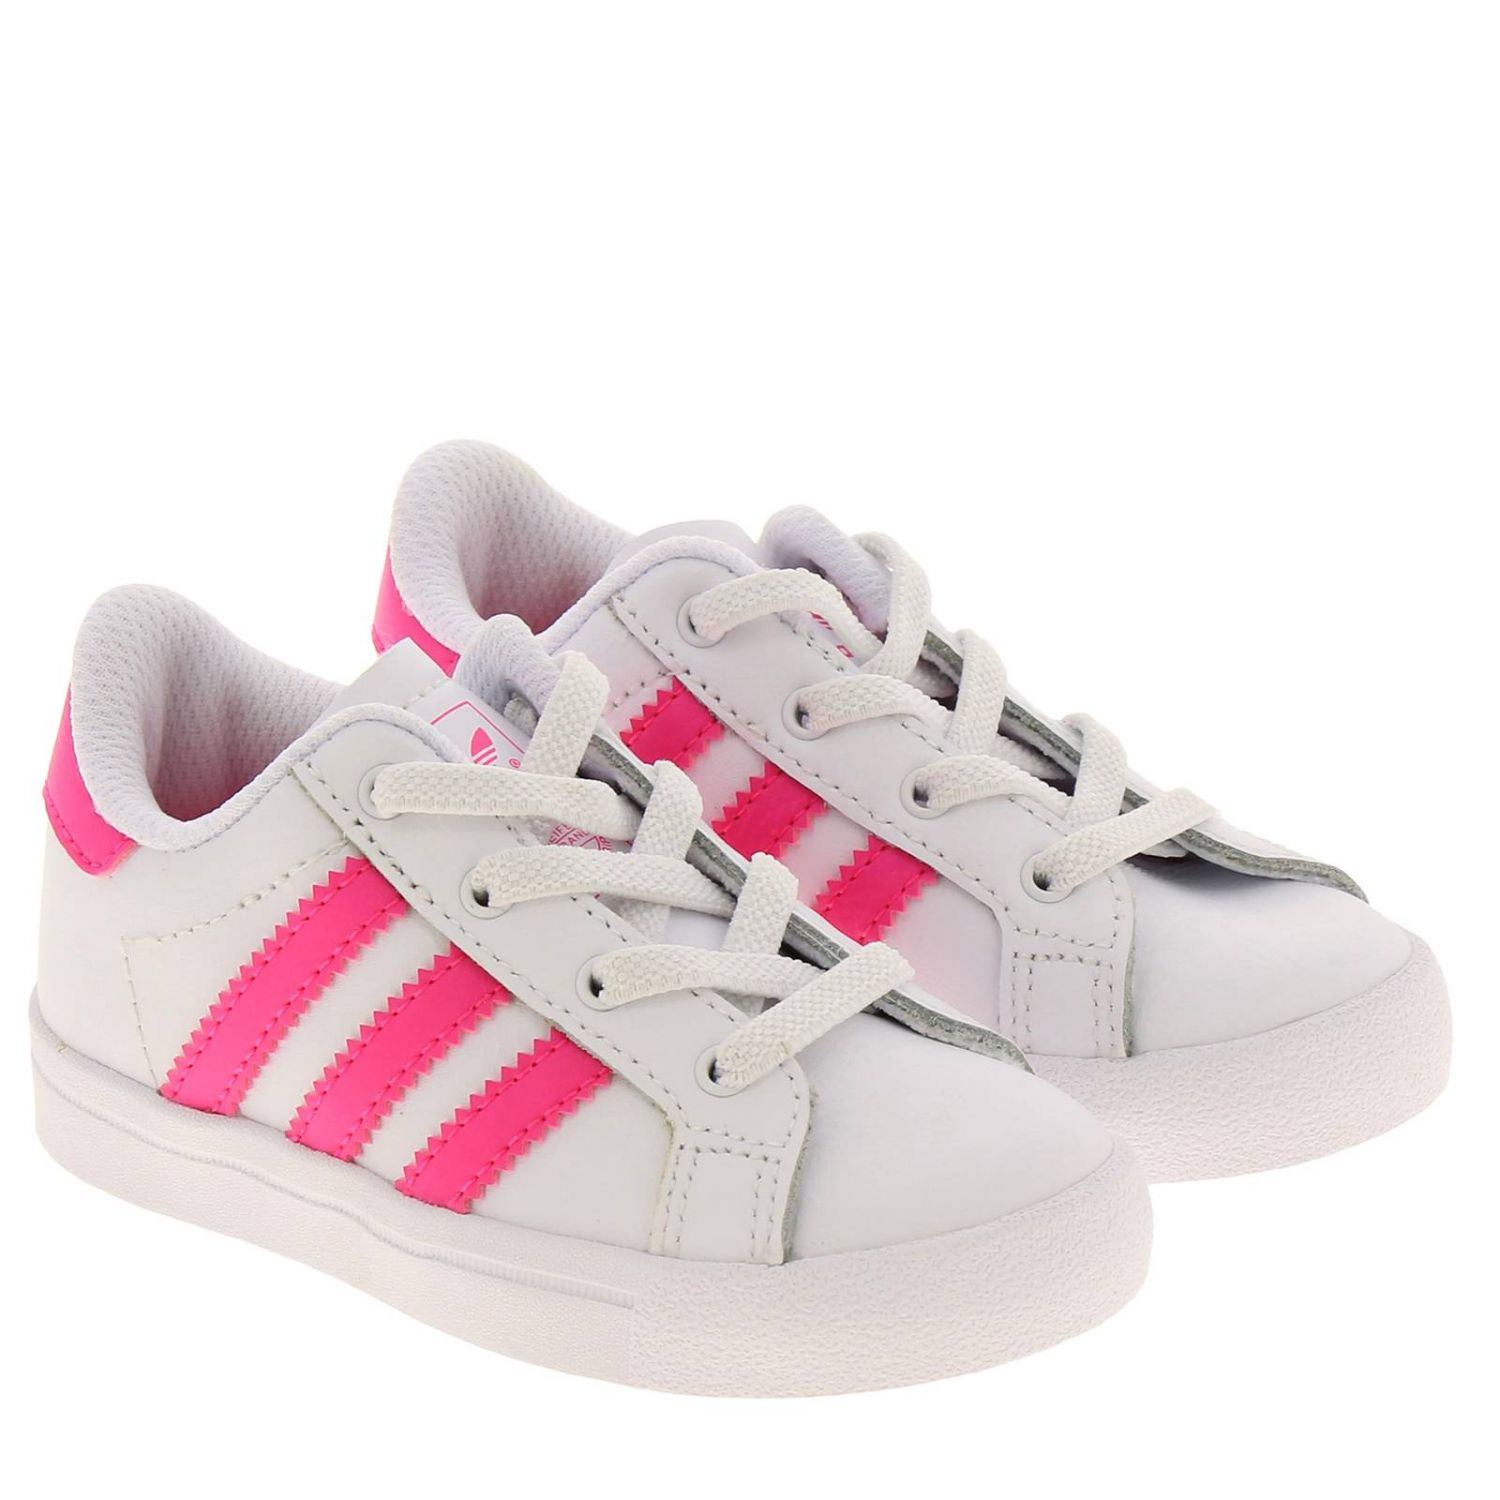 Shoes Adidas Originals: Adidas Originals Coast star sneakers in leather with contrasting bands white 2